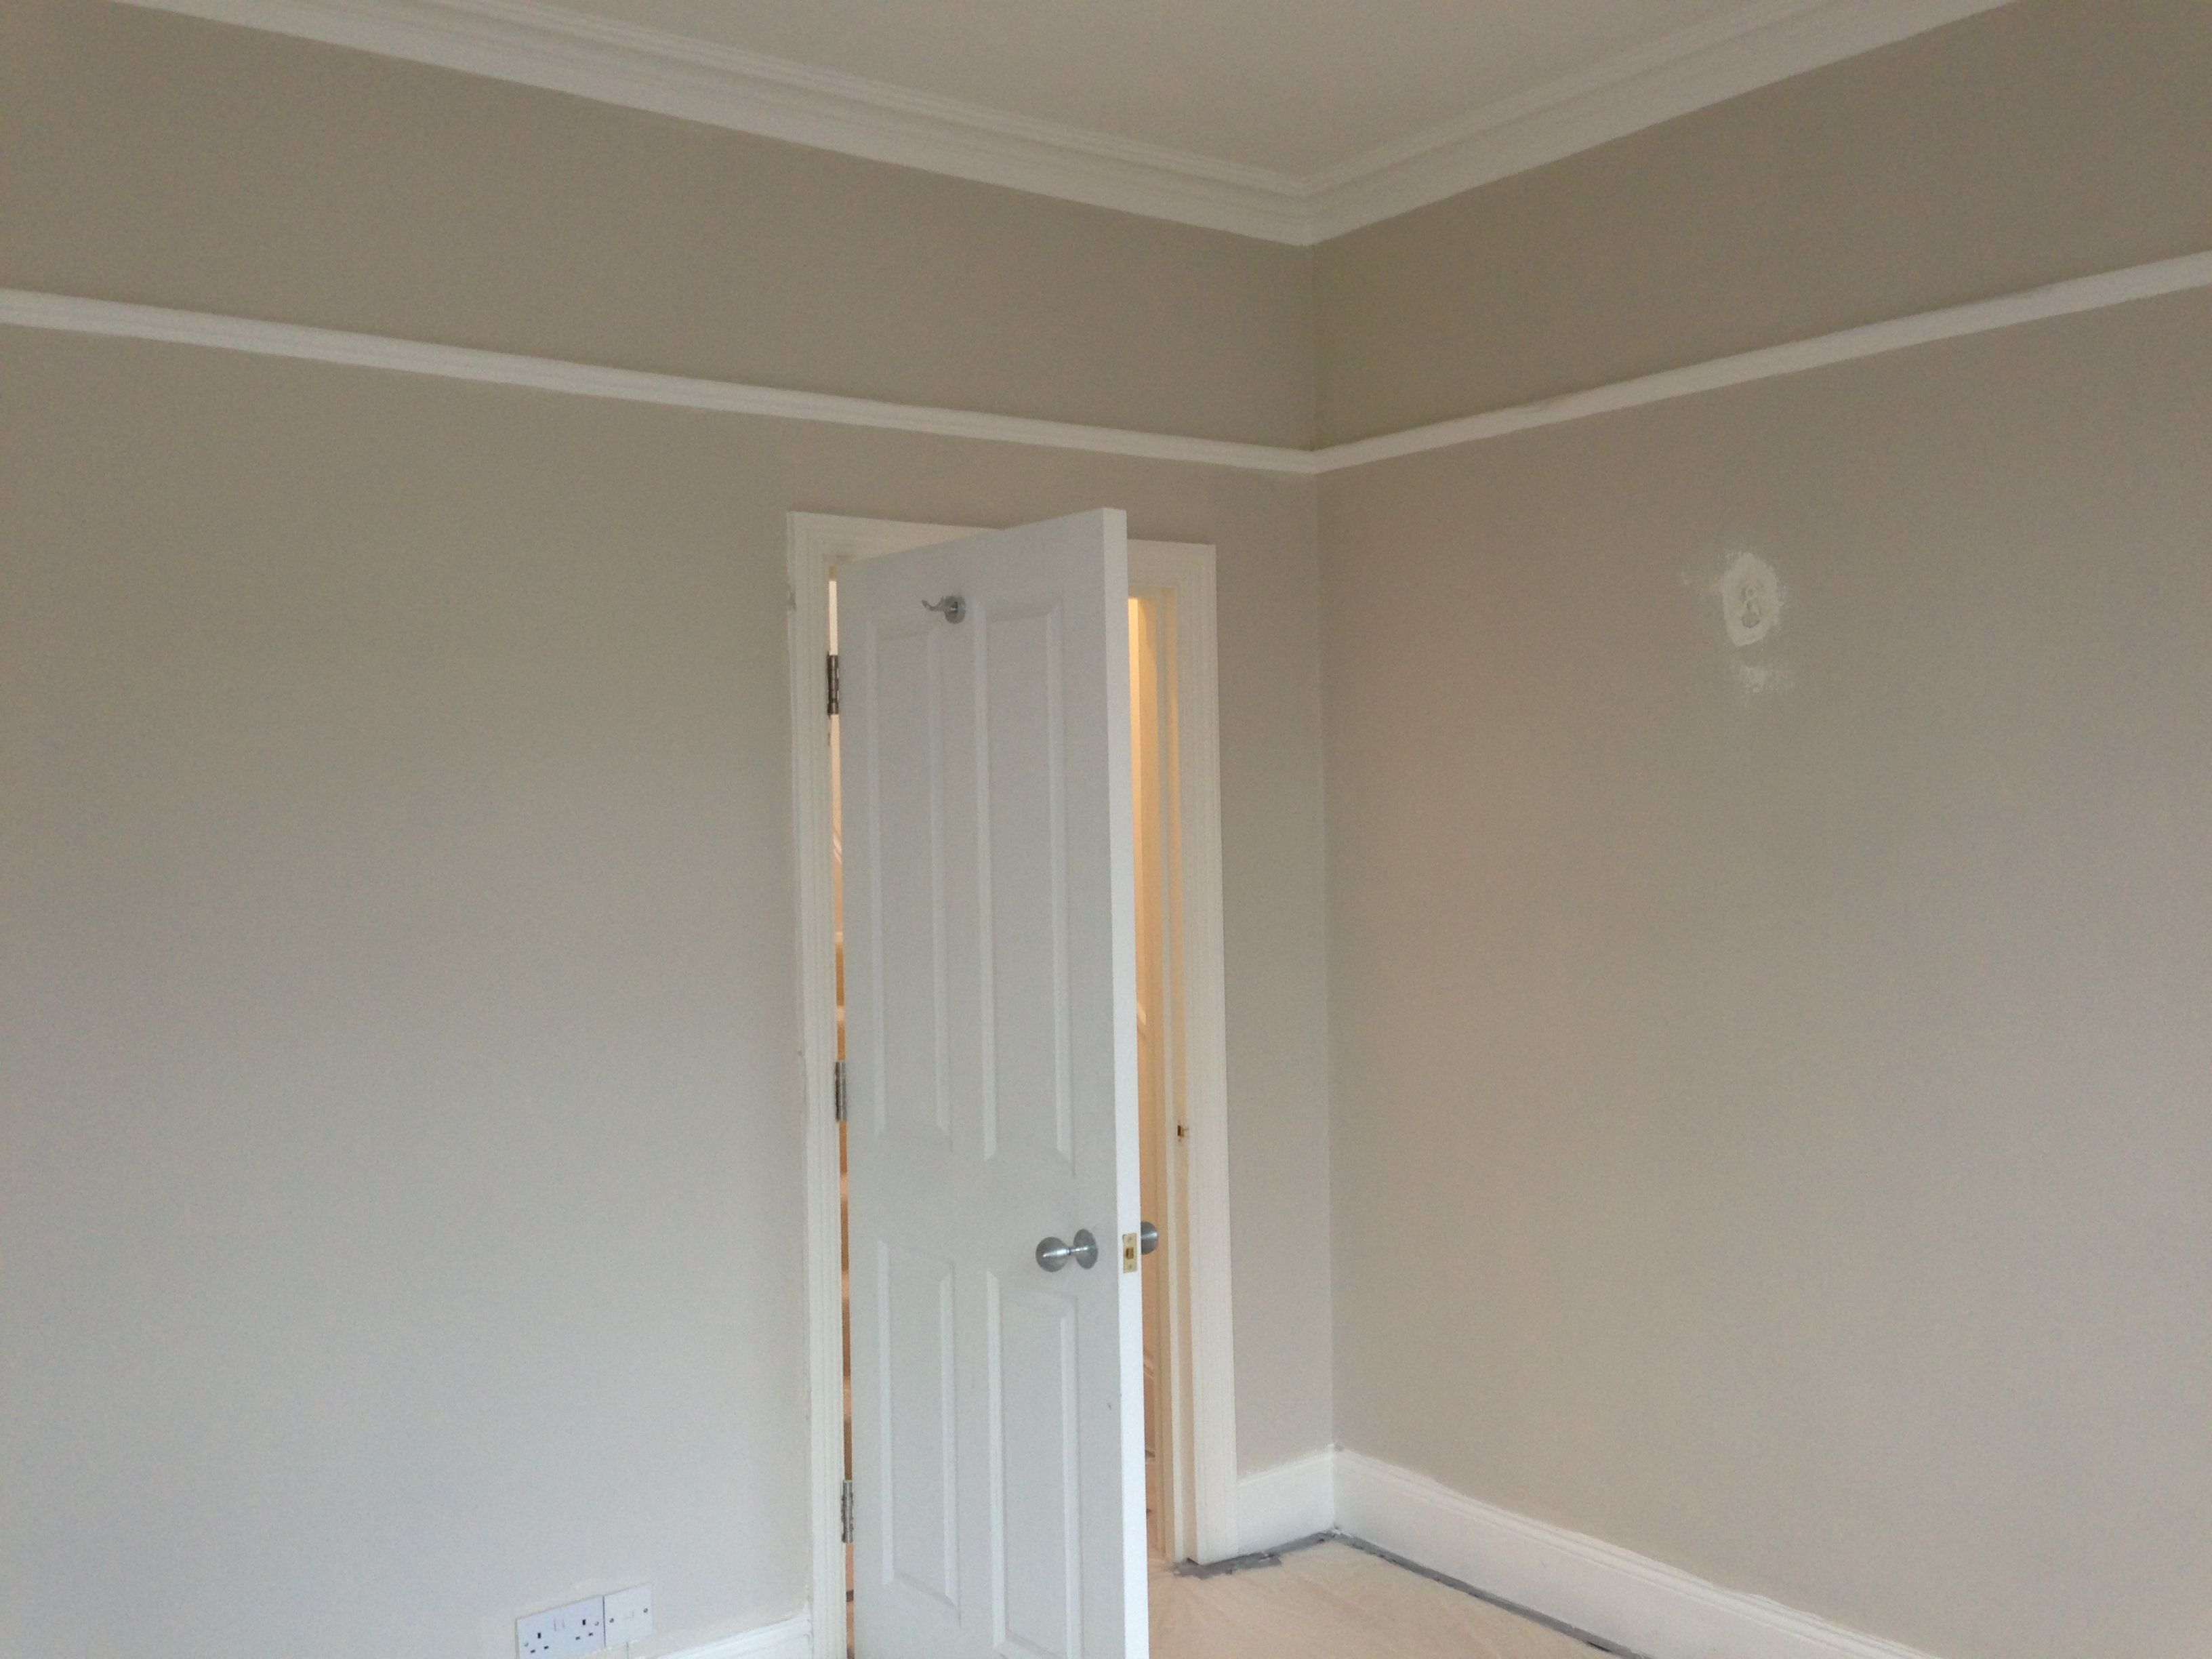 skimming stone farrow and ball came out way too beige and. Black Bedroom Furniture Sets. Home Design Ideas